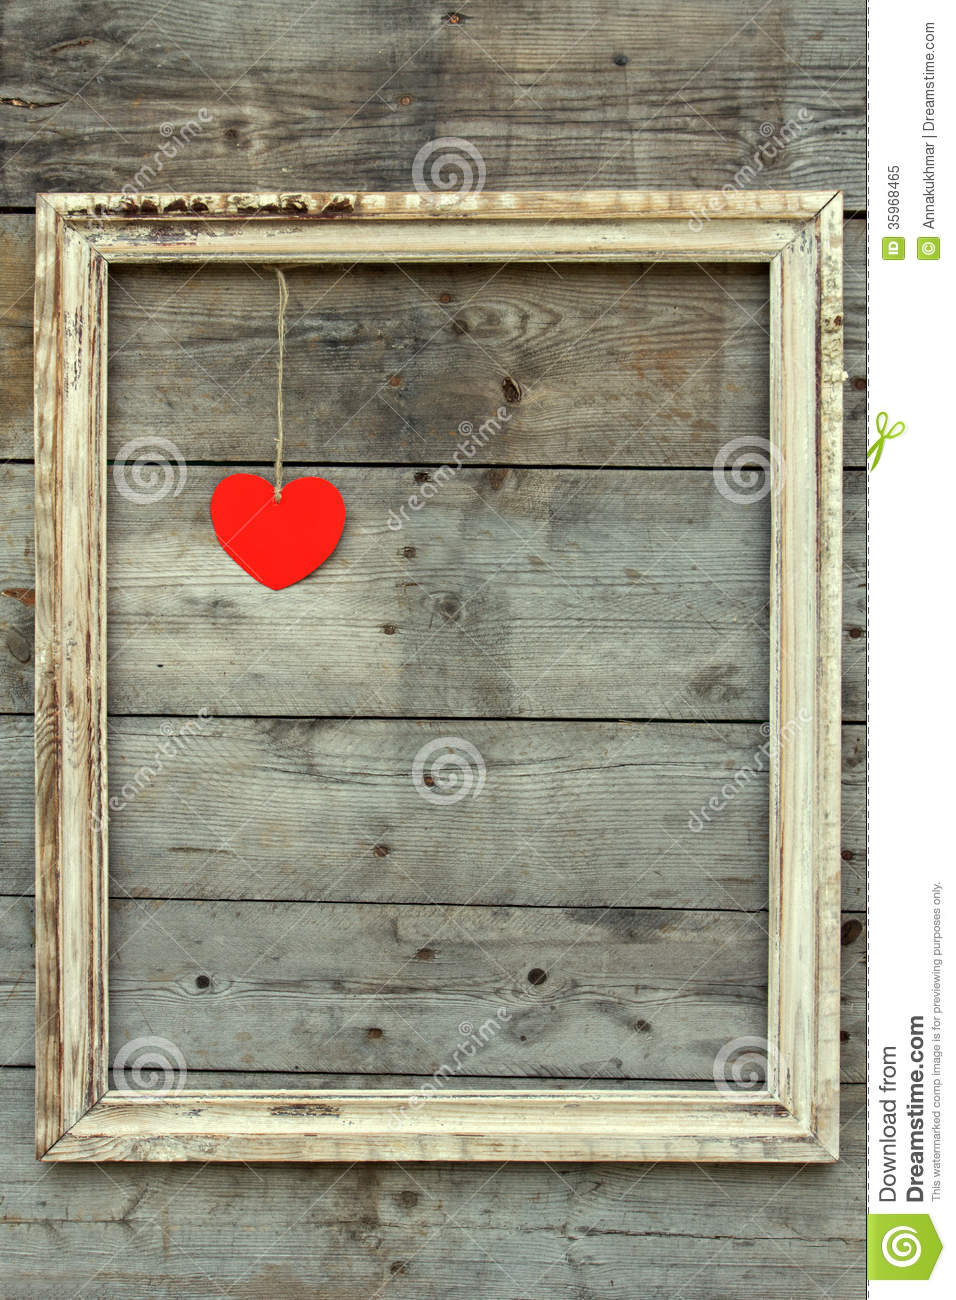 Vintage Wooden Frame With Red Heart On A Grunge Background